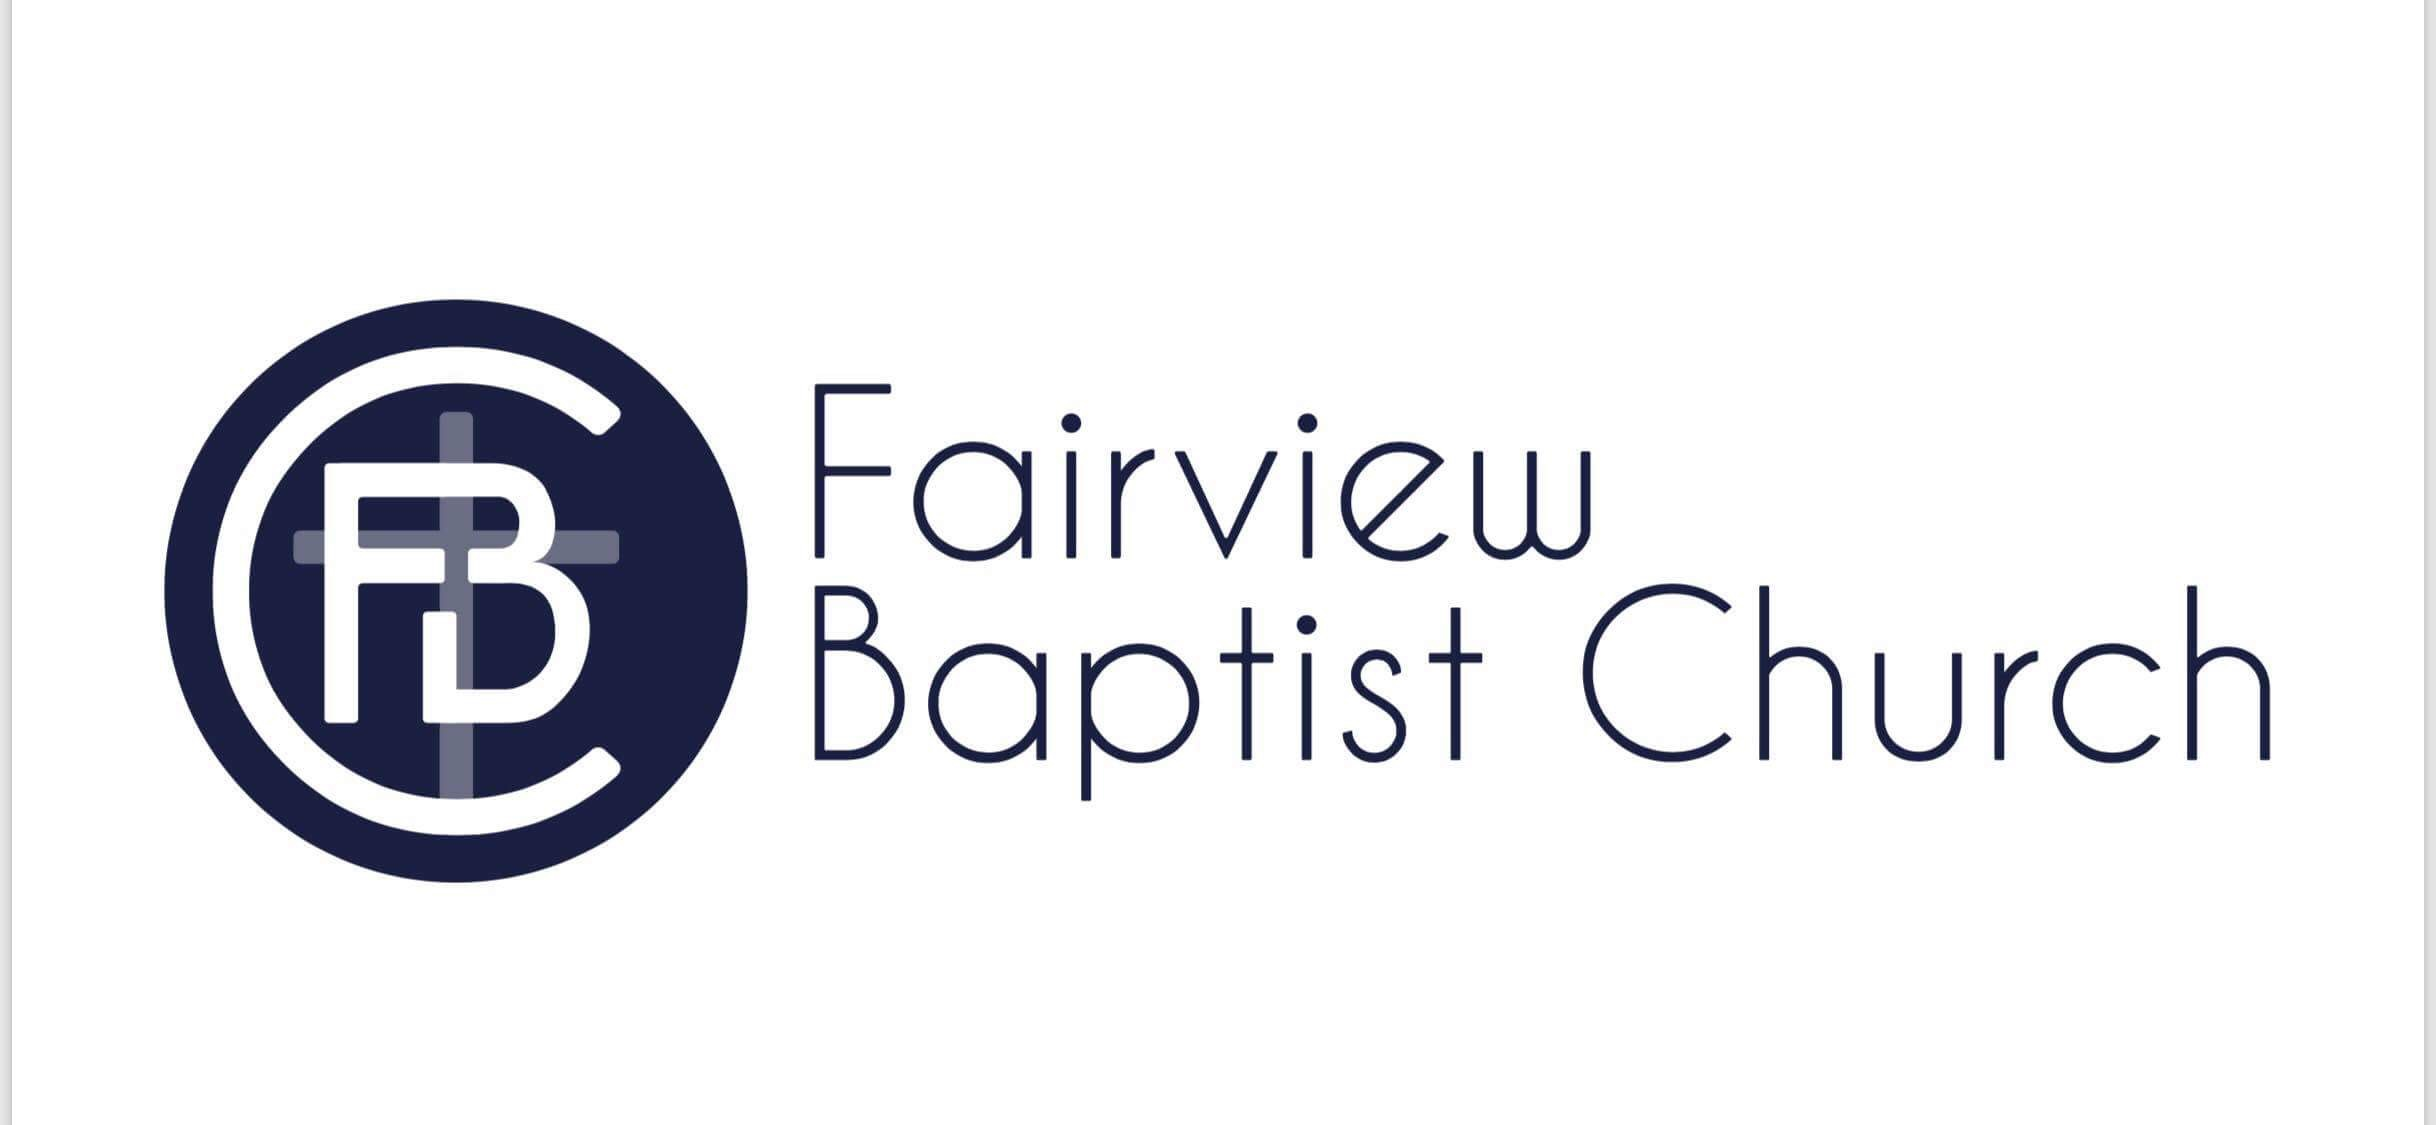 Fairview Baptist Church